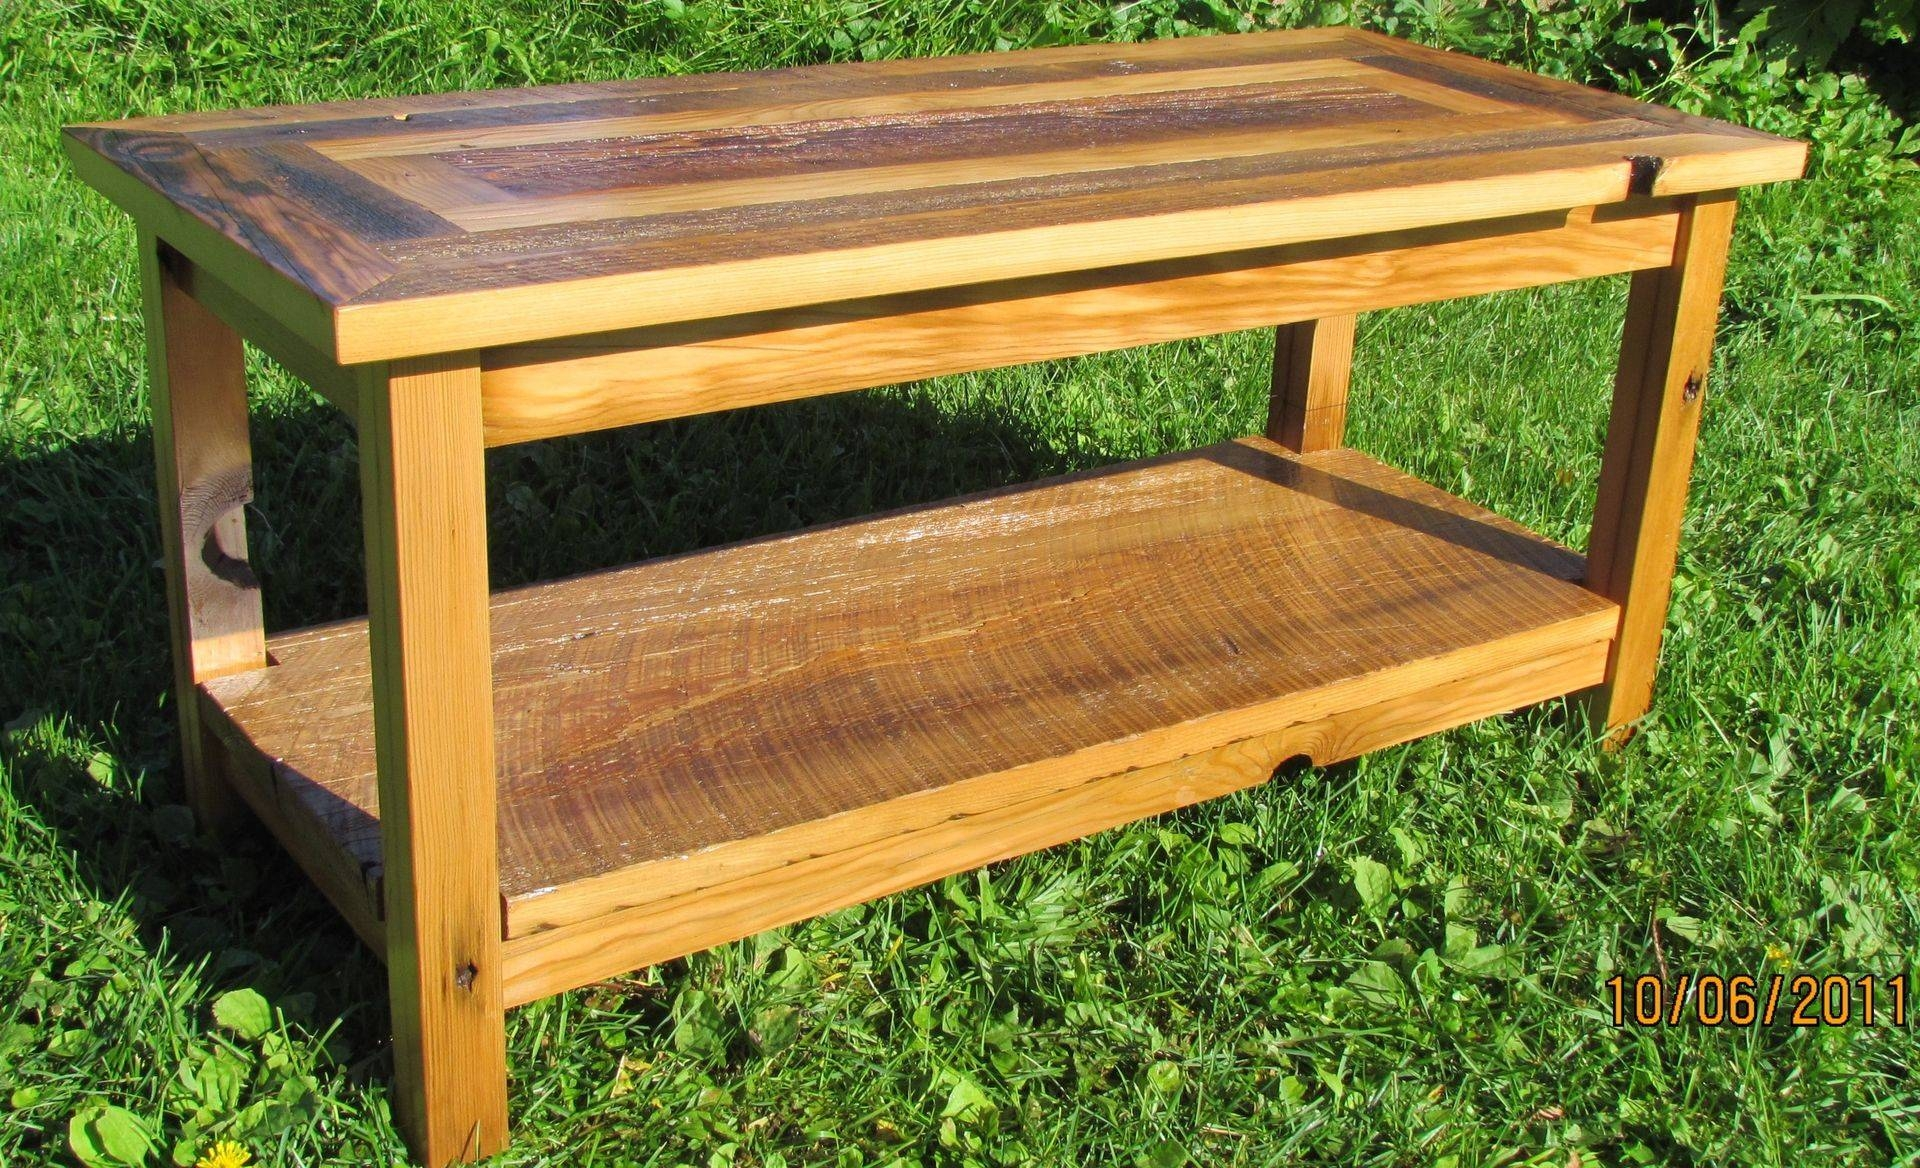 Beautiful Handmade Reclaimed Barnwood Coffee Table With Matching End Tables Intended  For Coffee Table With Matching End